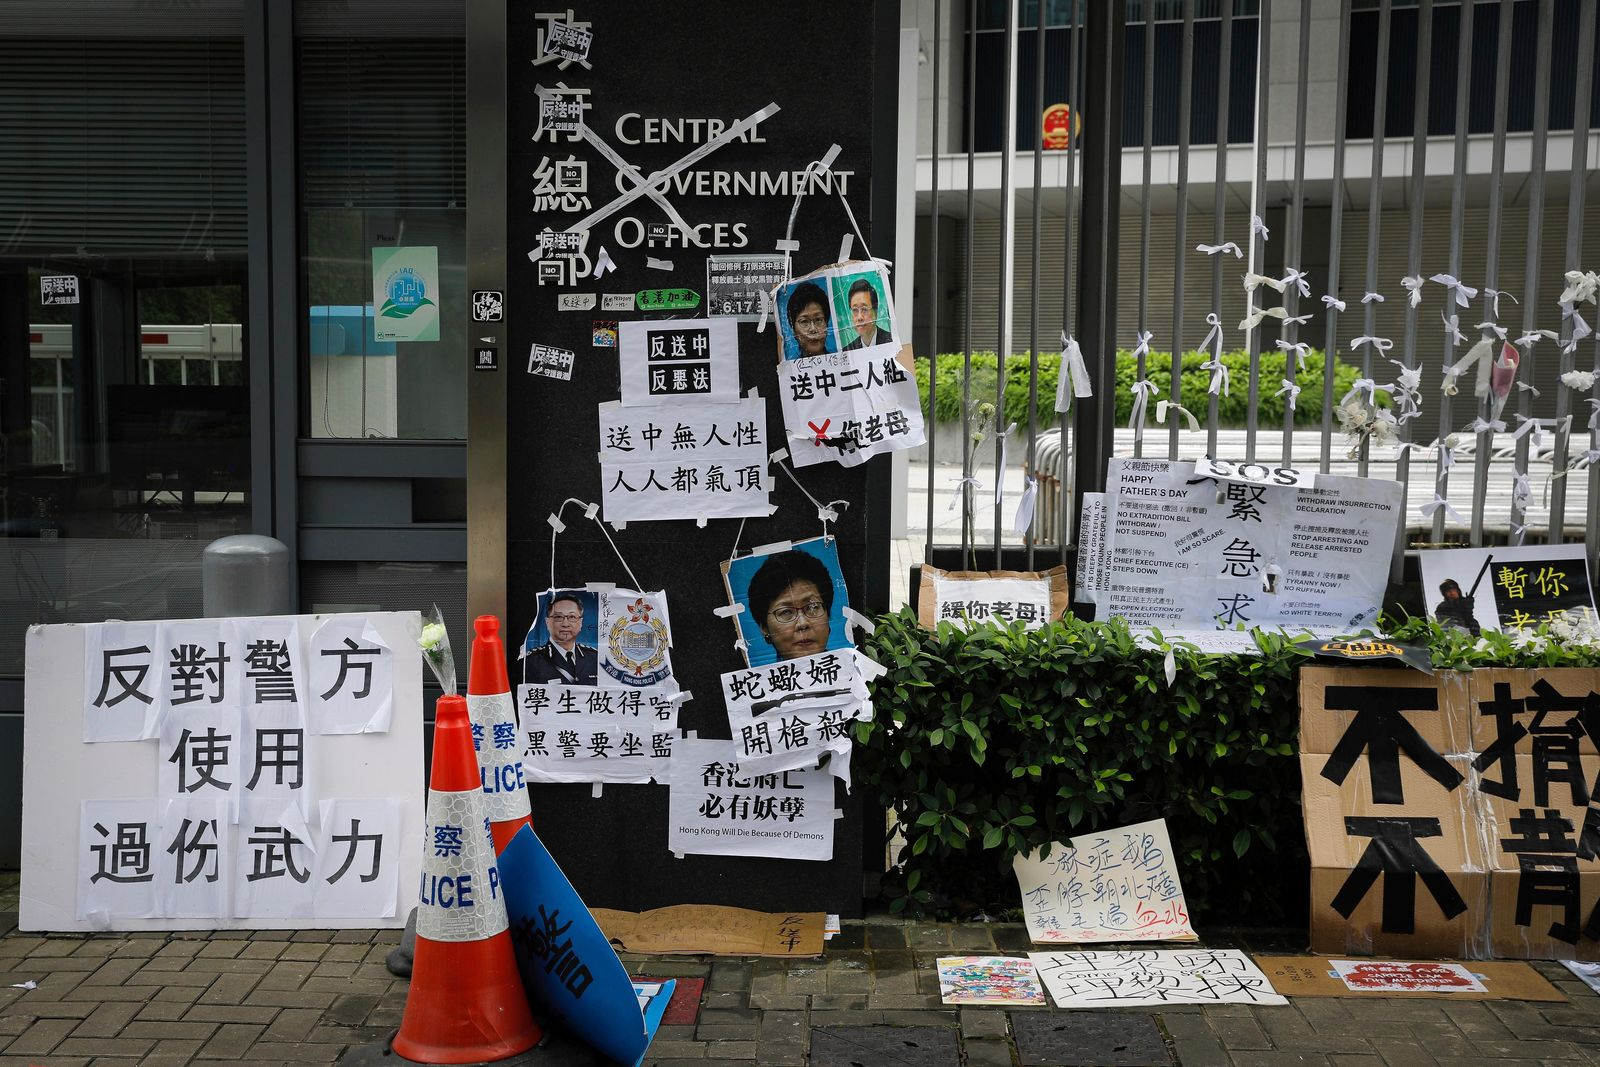 Posters and placards bearing photos of Hong Kong Chief Executive Carrie Lam and police commissioner Stephen Lo Wai-chung which left by protesters are placed outside the Legislative Council in Hong Kong, Tuesday, June 18, 2019. Hong Kong's government headquarters reopened Tuesday as the number of protesters outside dwindled to a few dozen and life returned to normal in the former British colony. (AP Photo/Vincent Yu)